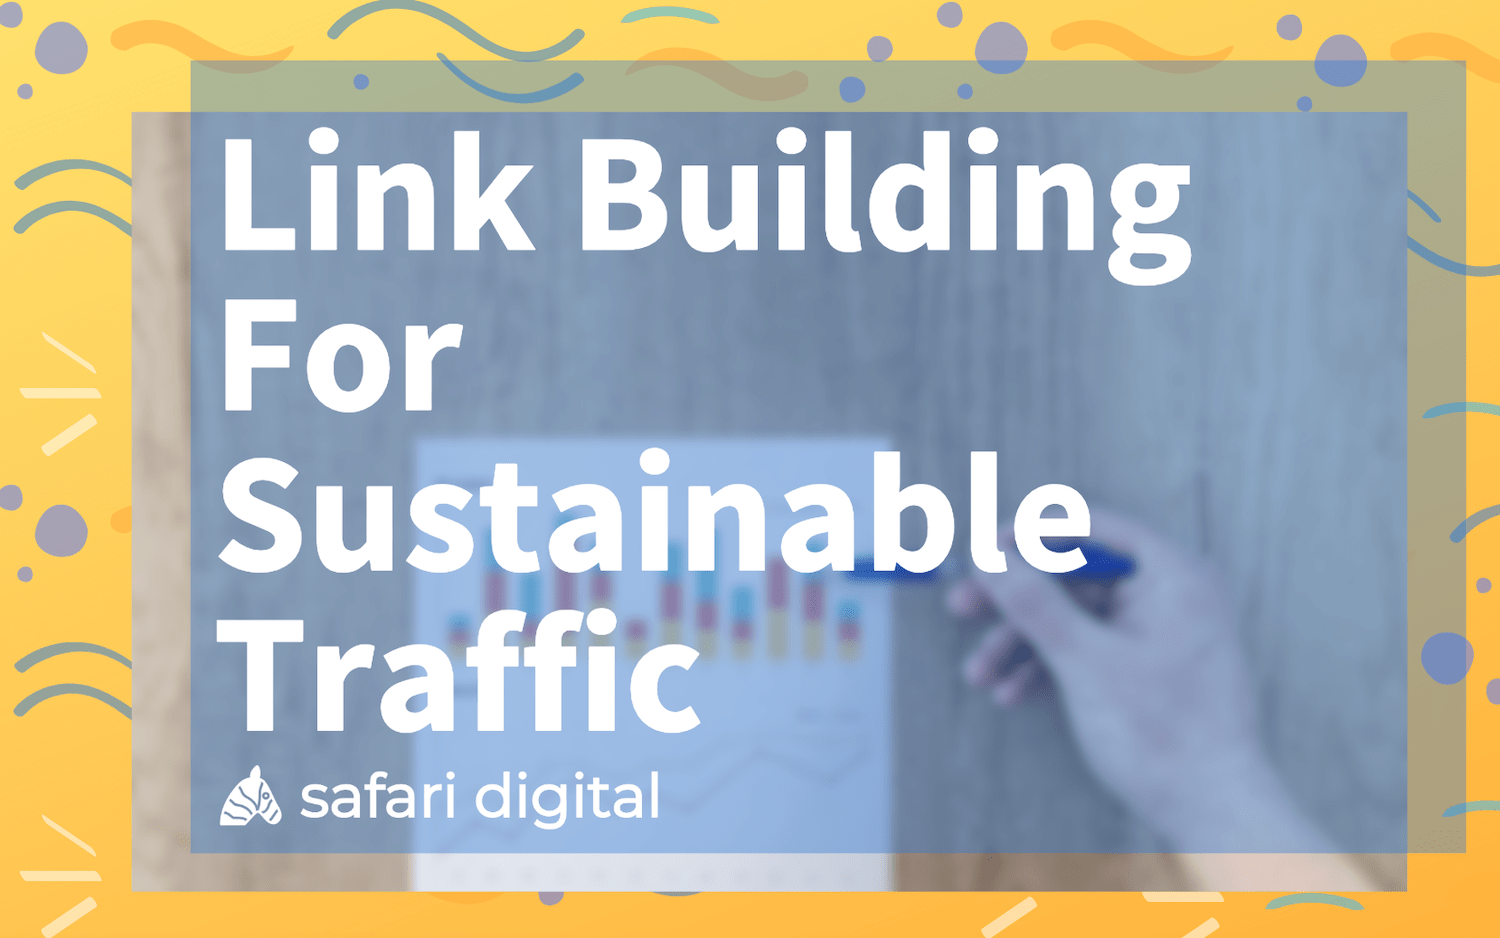 Link Building for Sustainable traffic banner image large